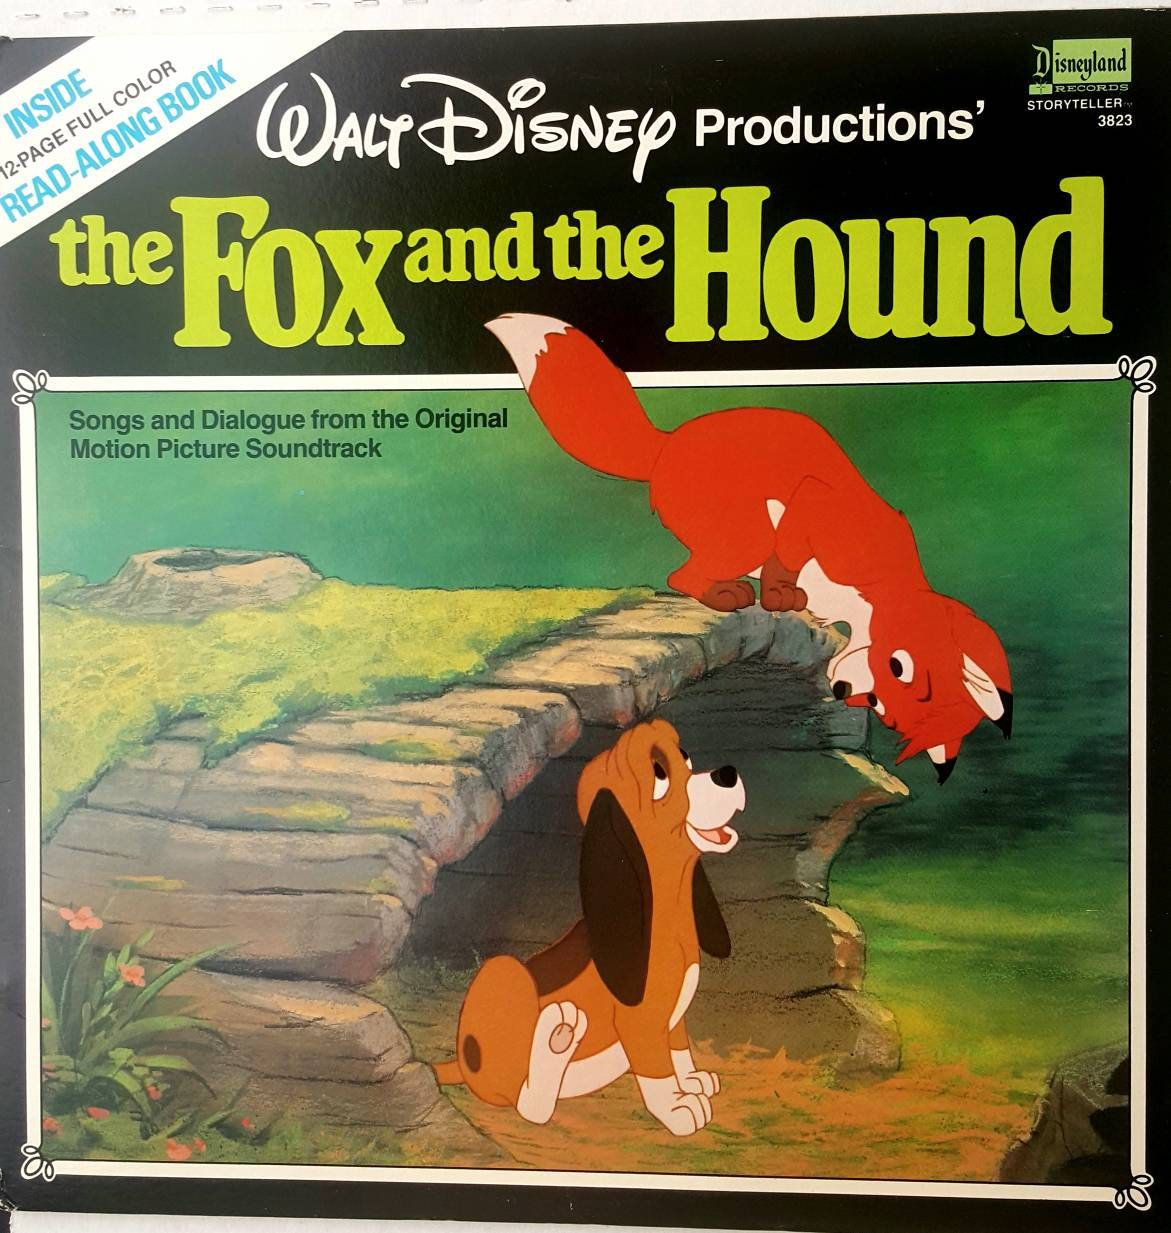 Walt Disney Fox and the Hound, book and record. 1981 by